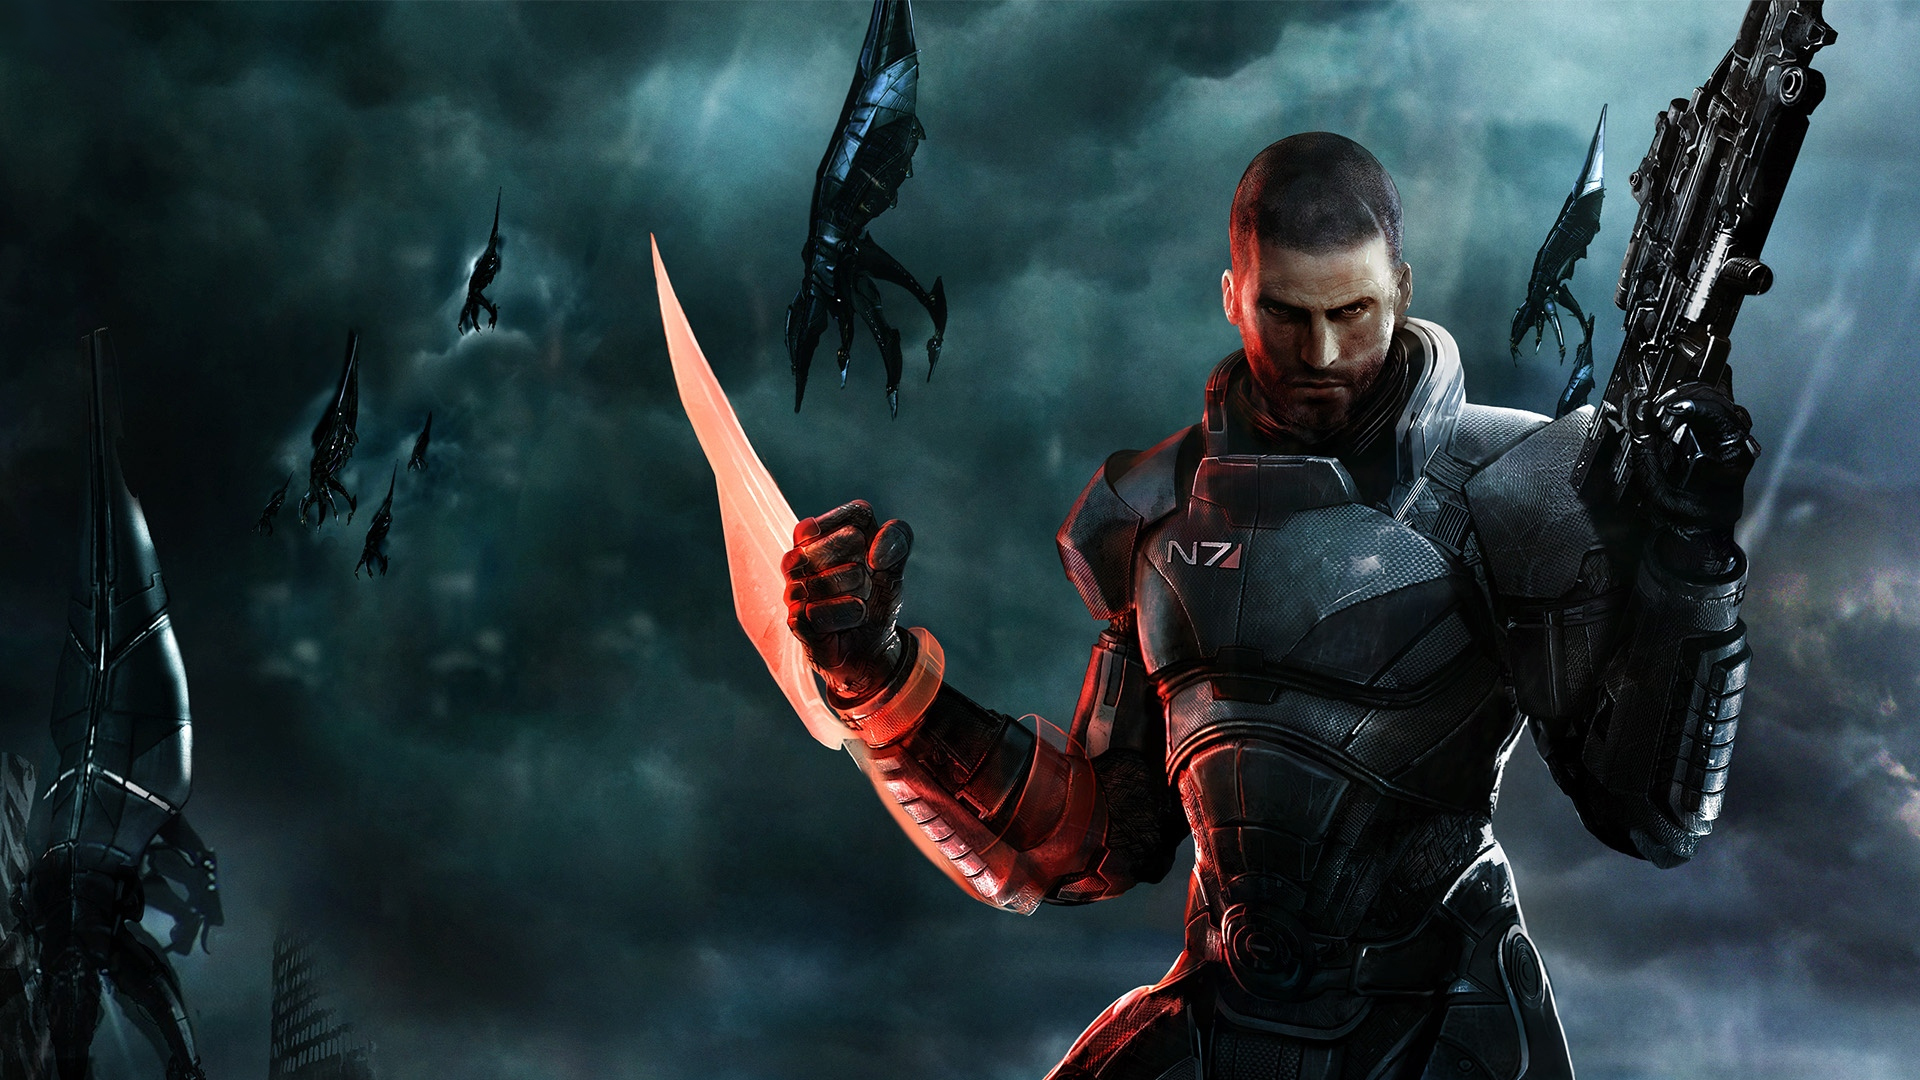 Mass Effect 3 Hd Wallpaper Background Image 1920x1080 Id